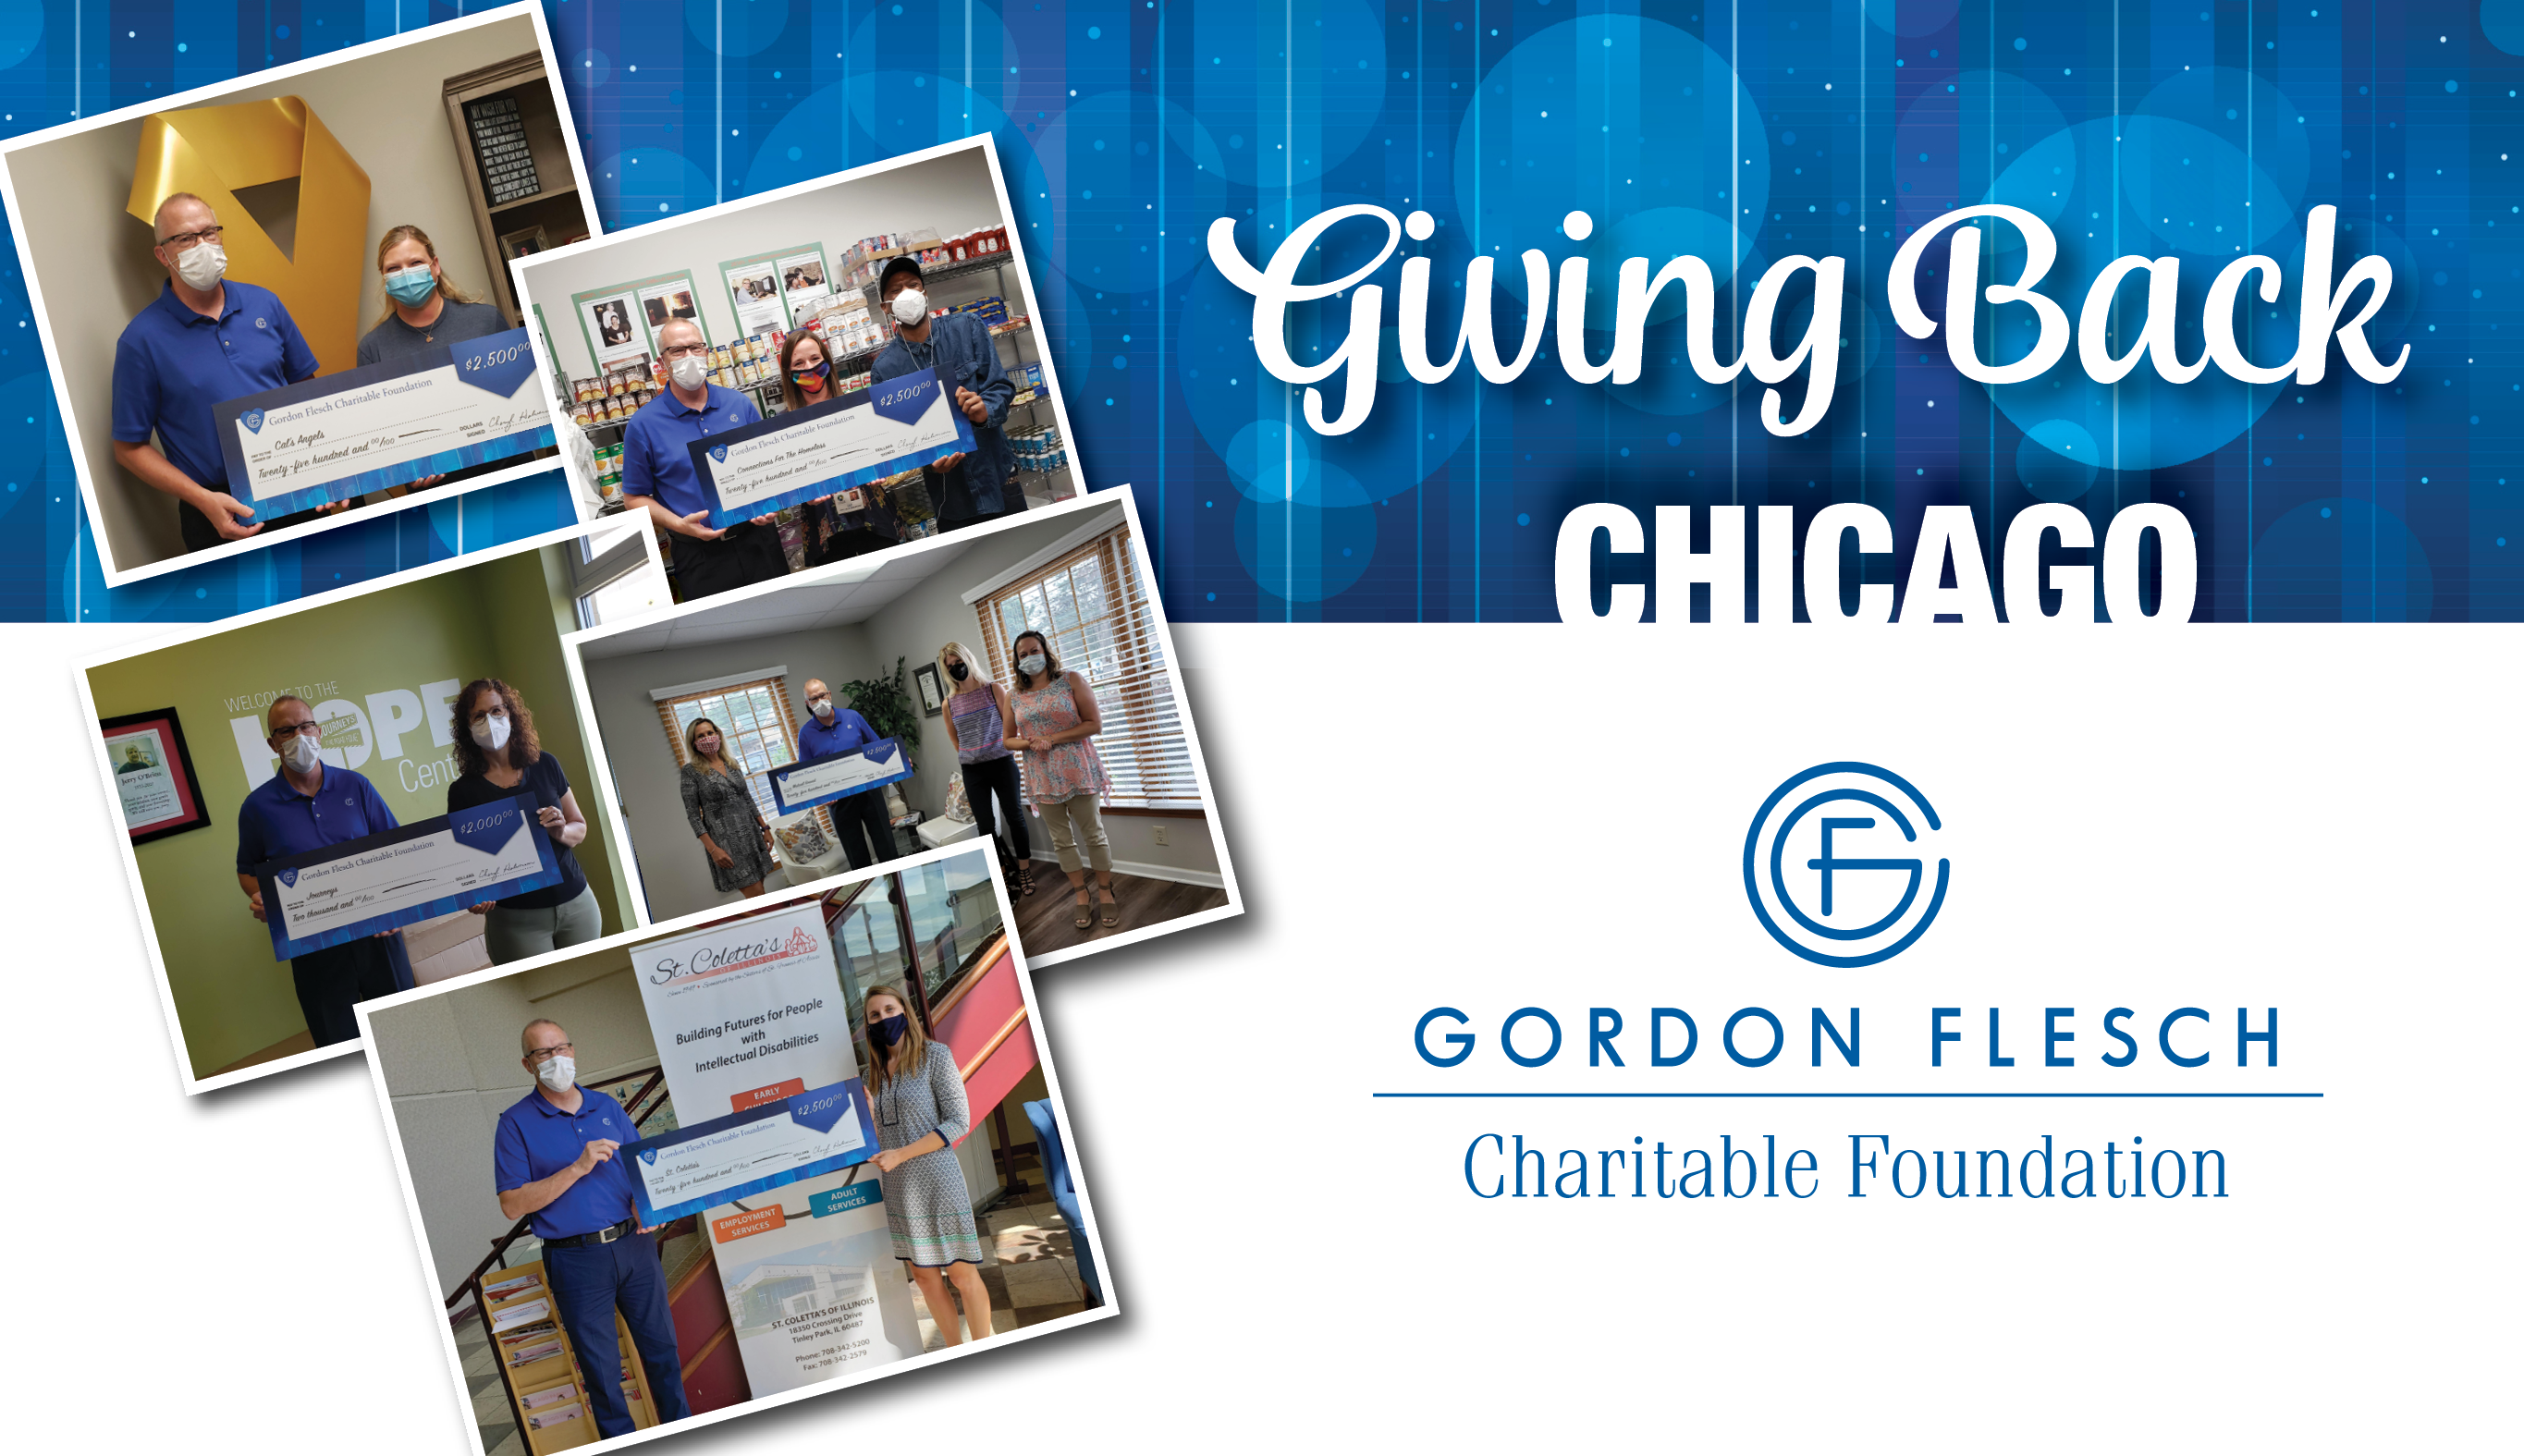 Gordon Flesch Charitable Foundation Donates $12,000 to Chicago-Area Charities